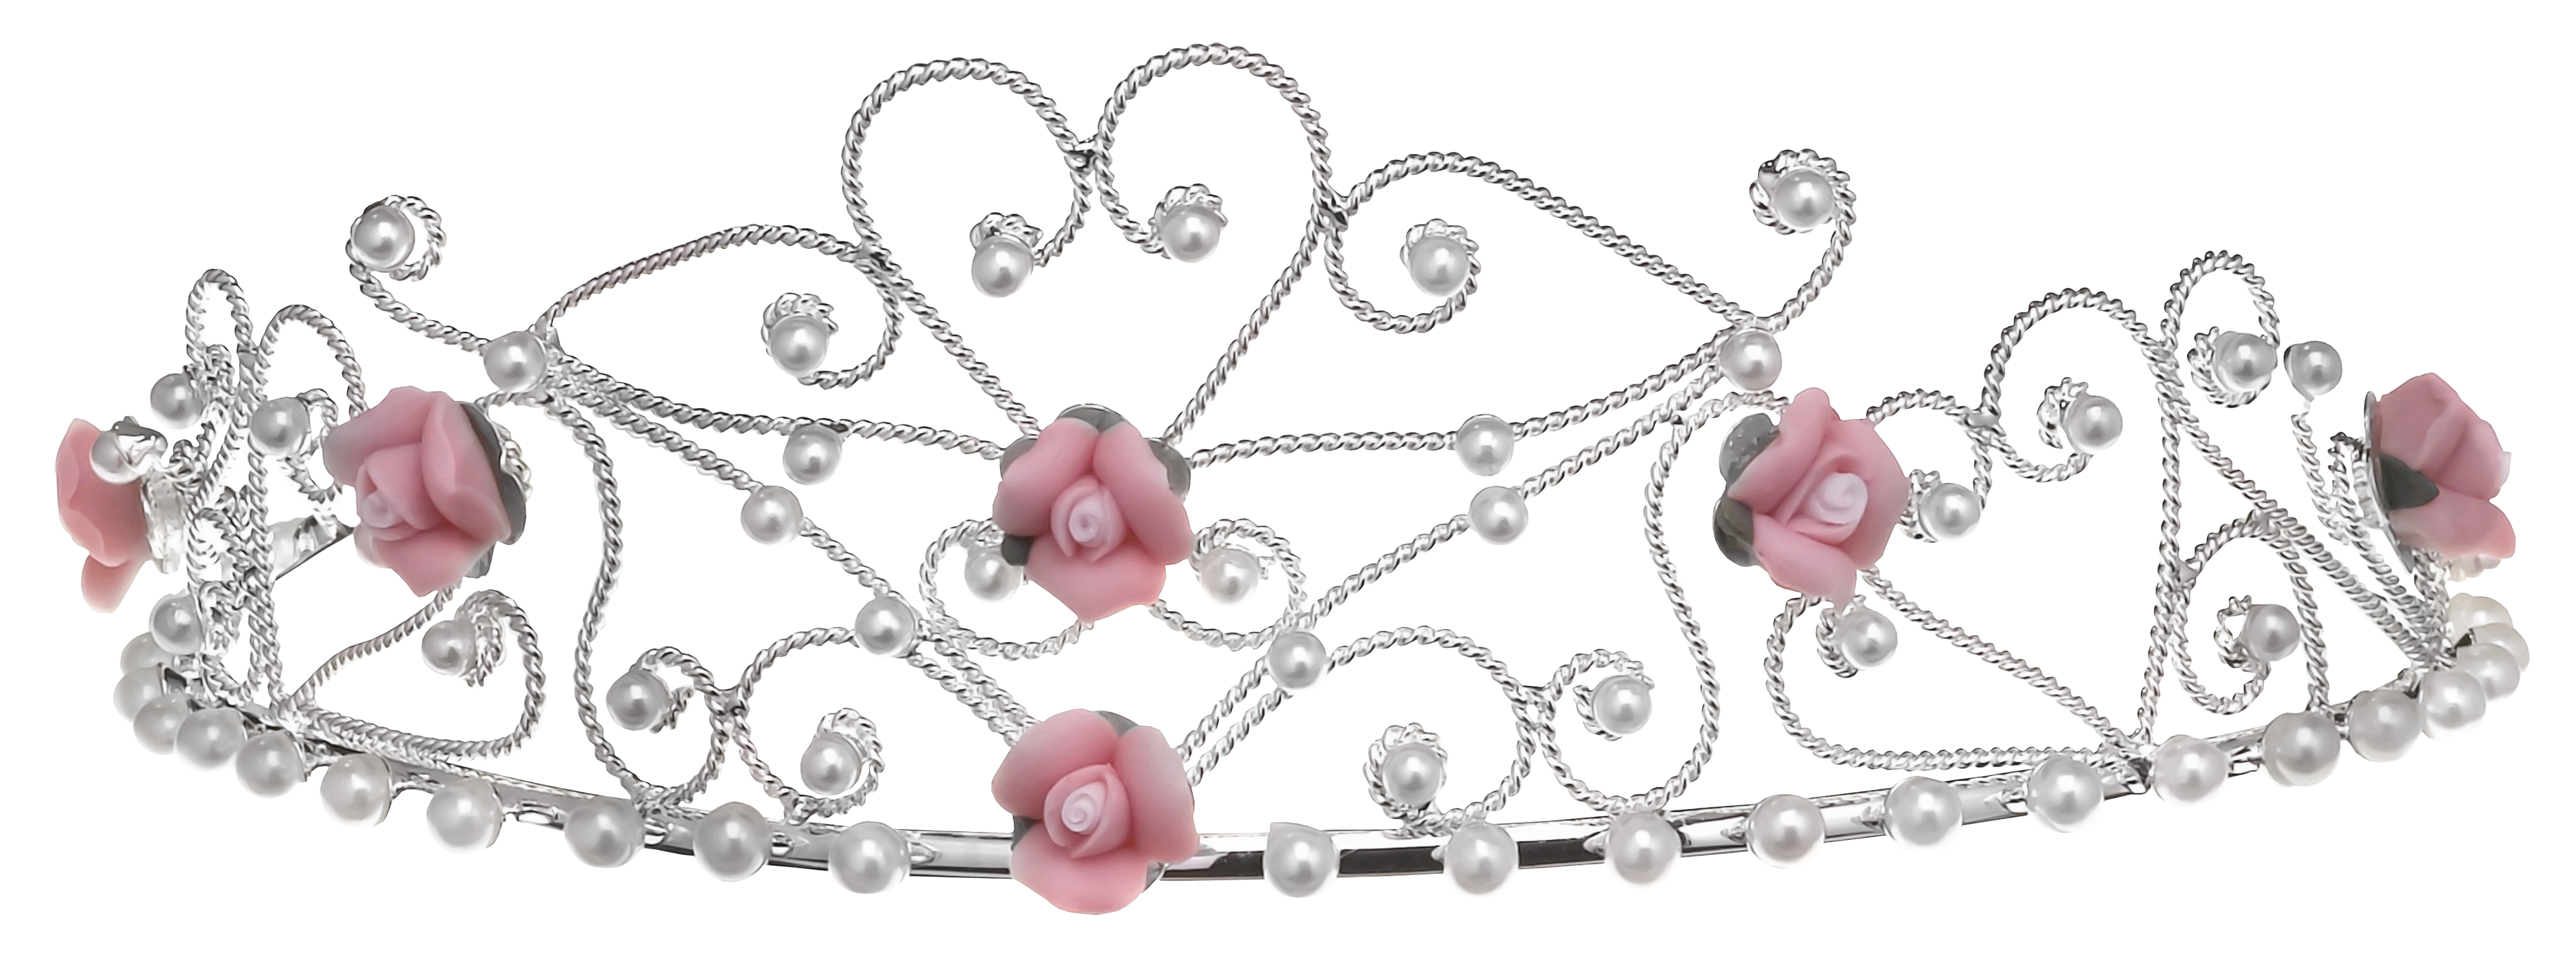 Necklace clipart swag. Tiara png image gallery